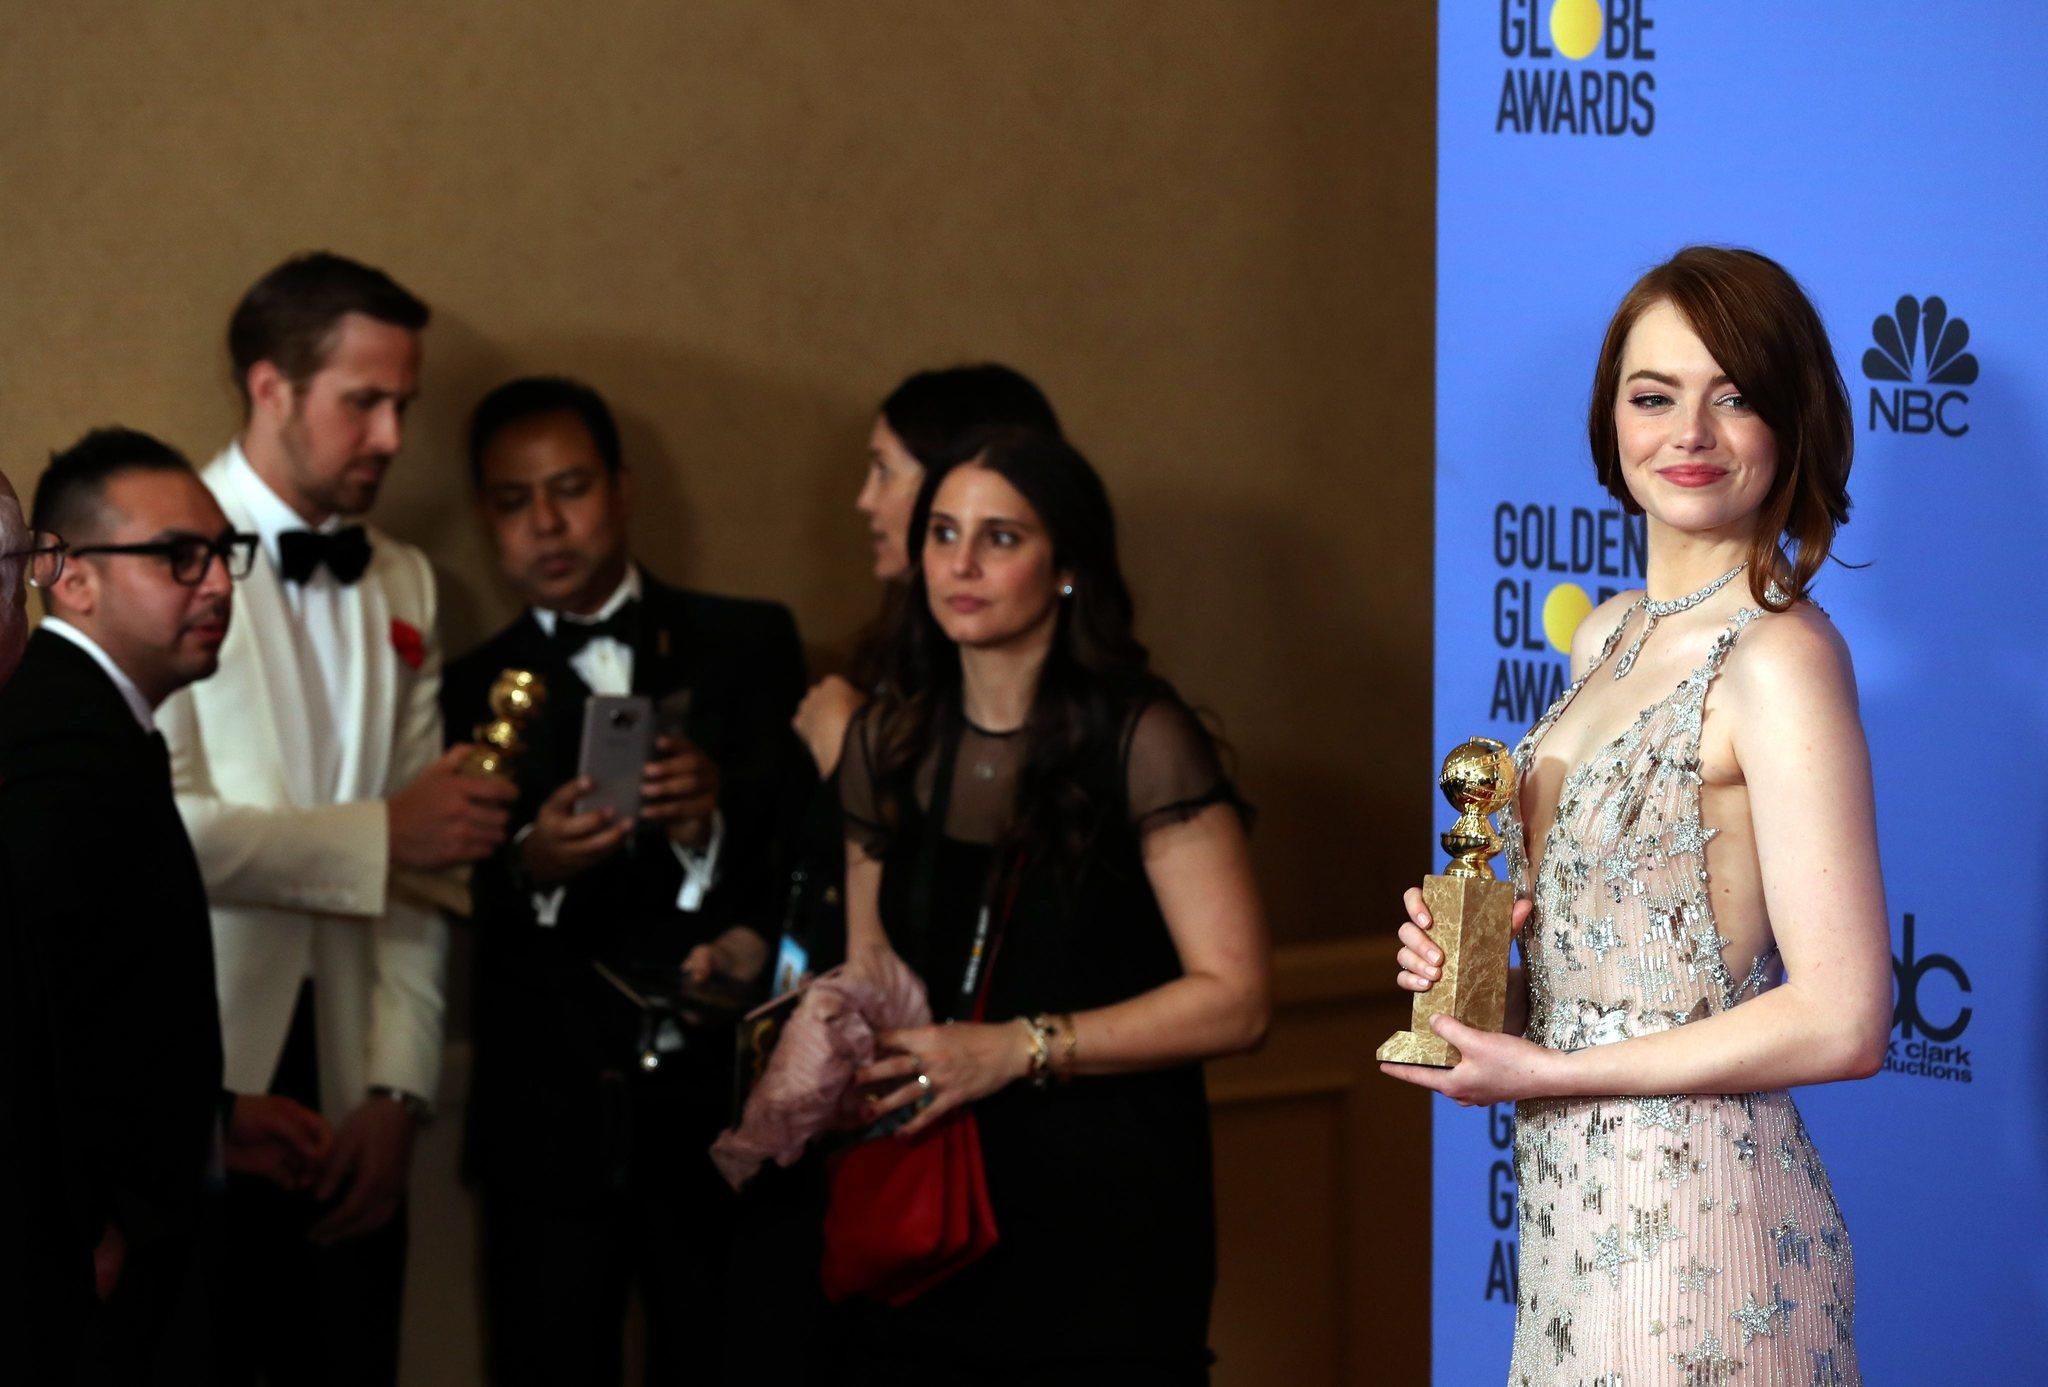 Emma Stone with her Golden Globe Award. (Mike Nelson / EPA)